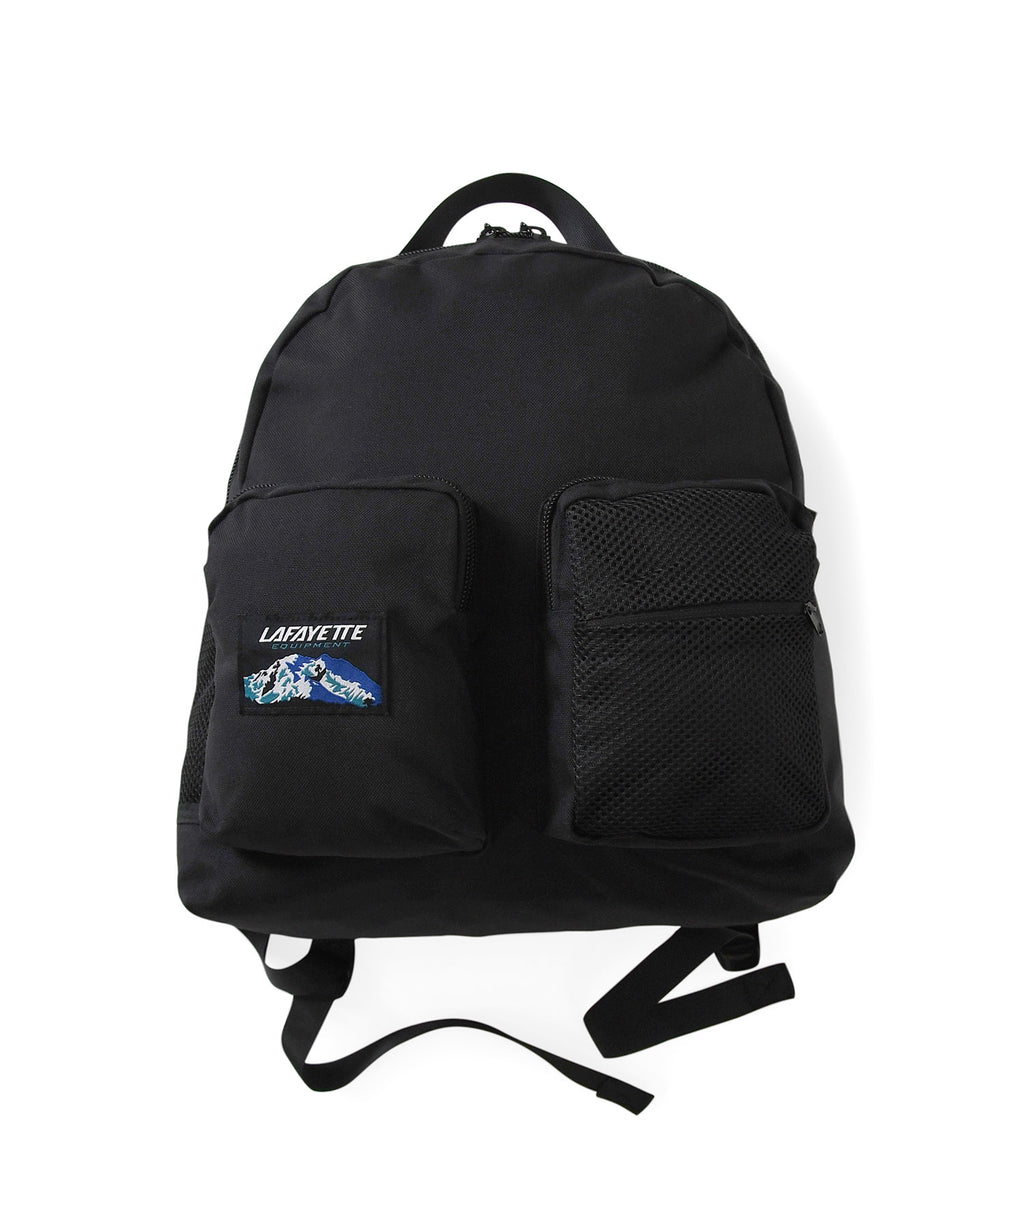 Lafayette HIGHEST DAY PACK LS201501 BLACK